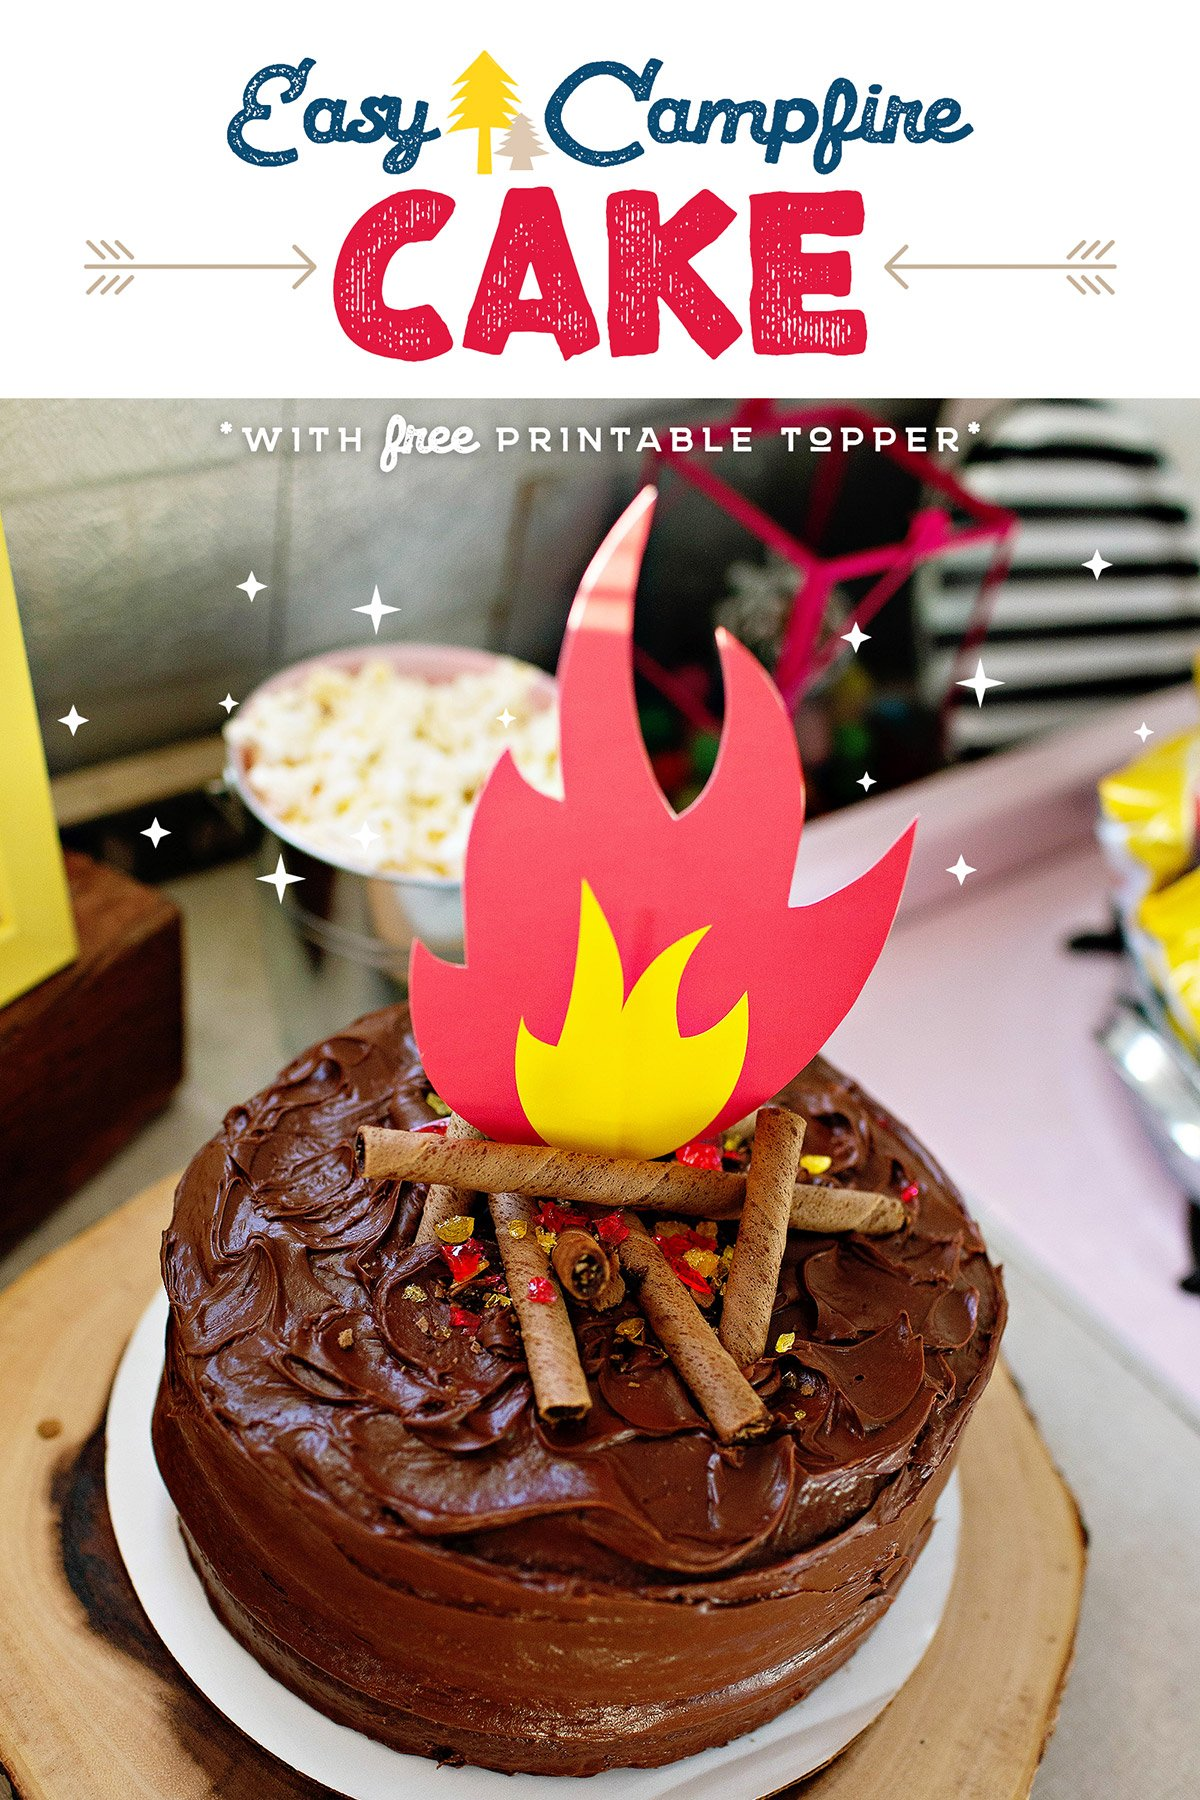 DIY Campfire Cake Tutorial